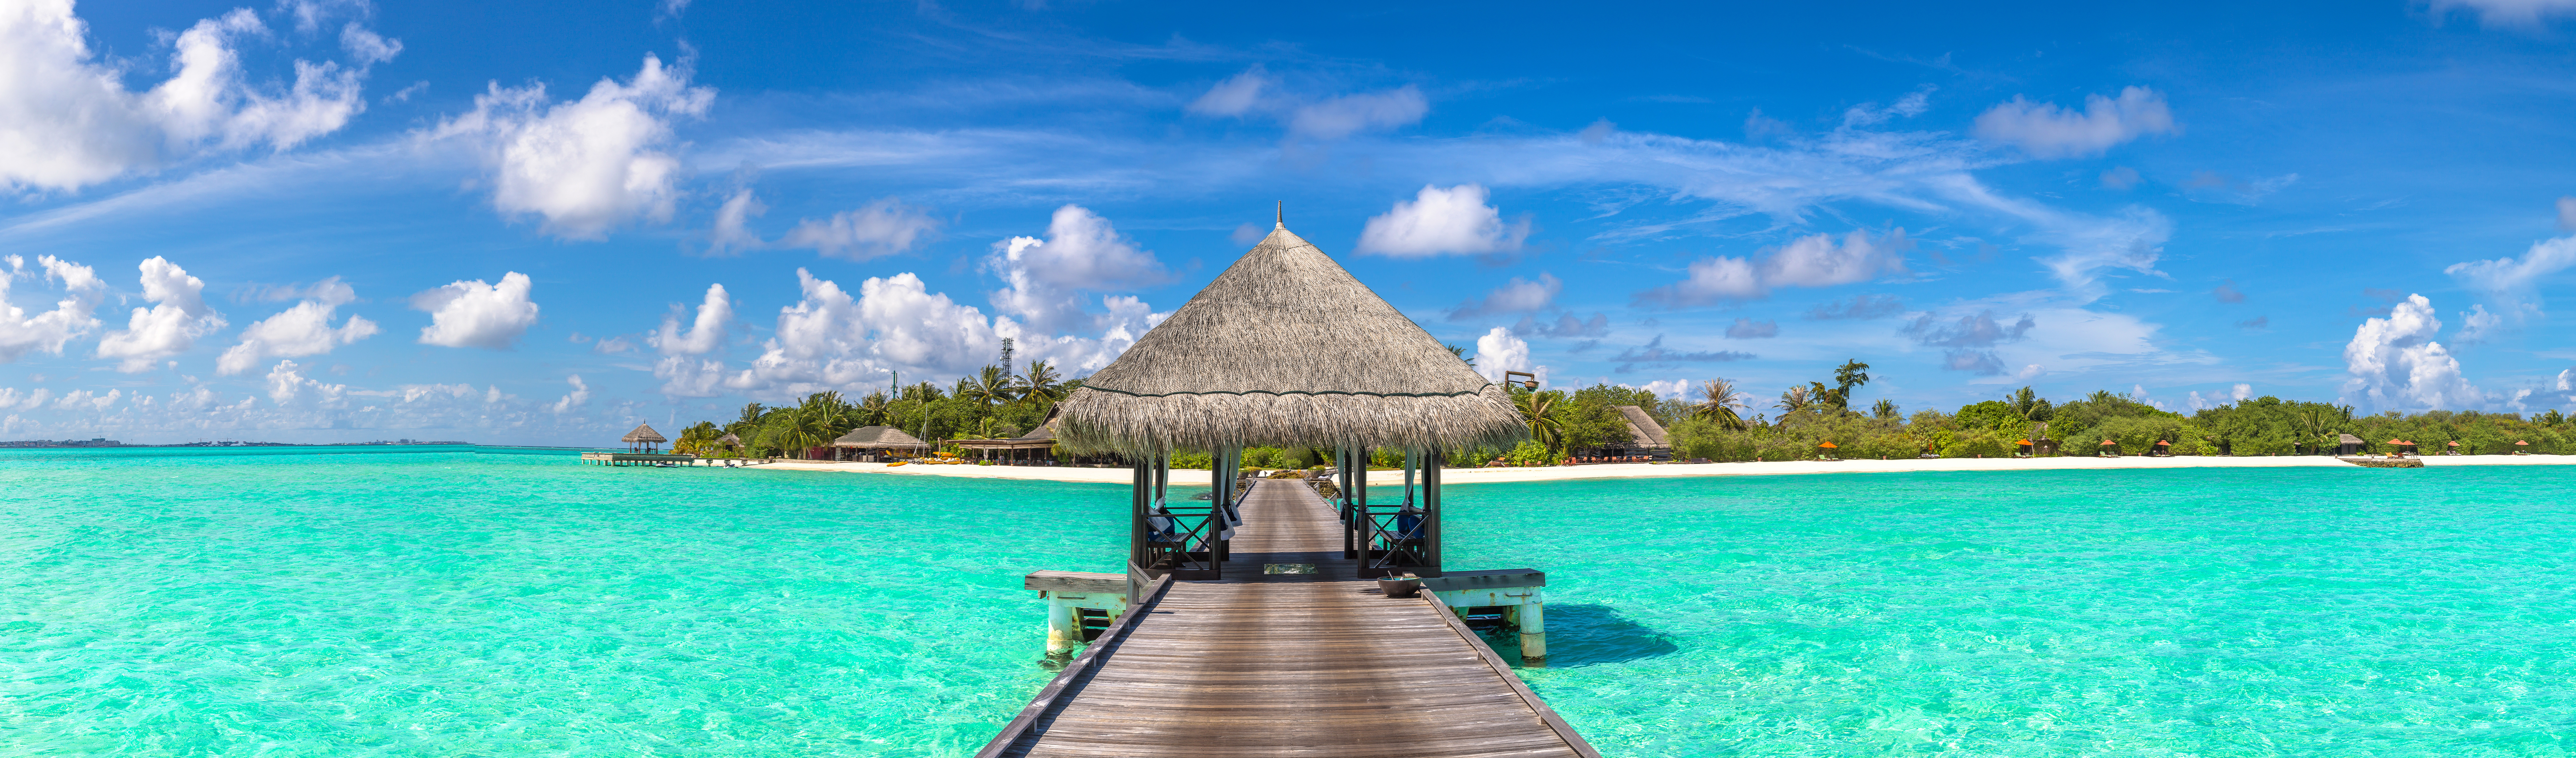 Indian Ocean, Maldives and Water Villas wooden jetty